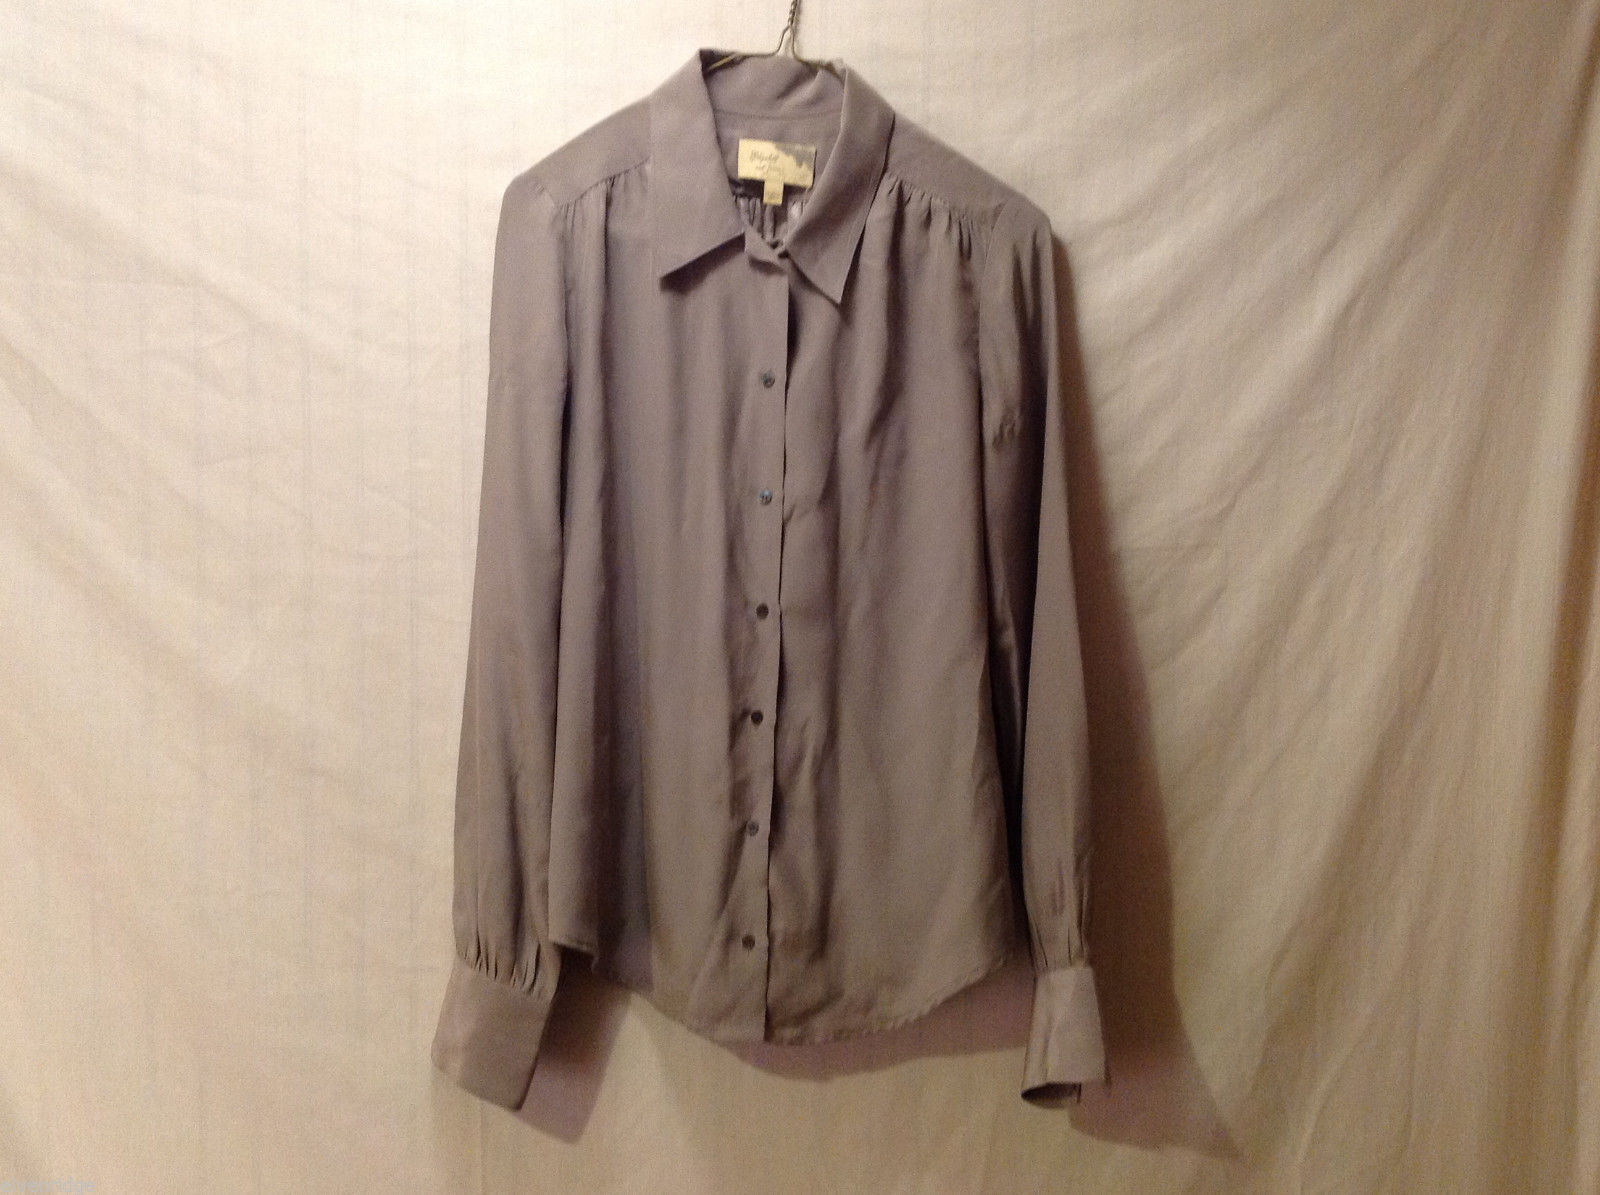 Elizabeth and James Women's Size S Button-Down Shirt Blouse Top Champagne Color